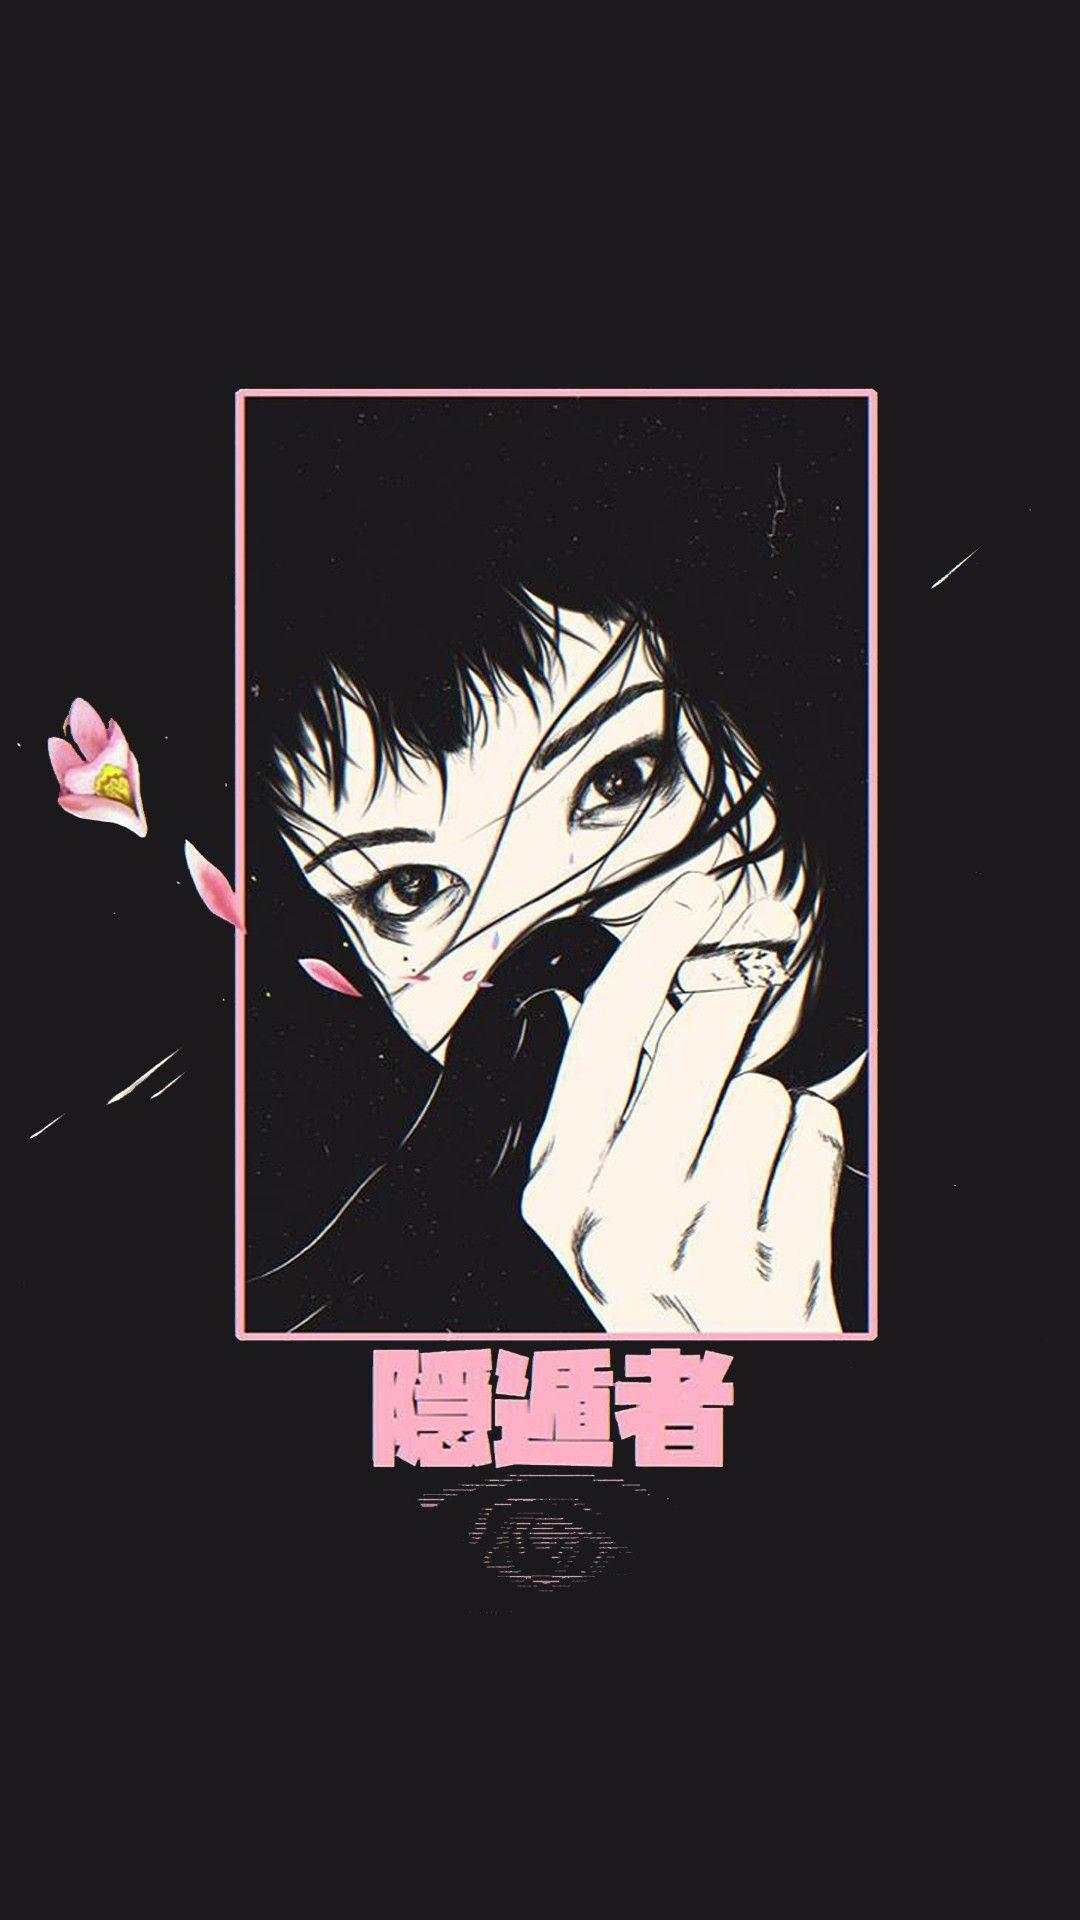 Sad Aesthetic Anime Wallpapers Wallpaper Cave